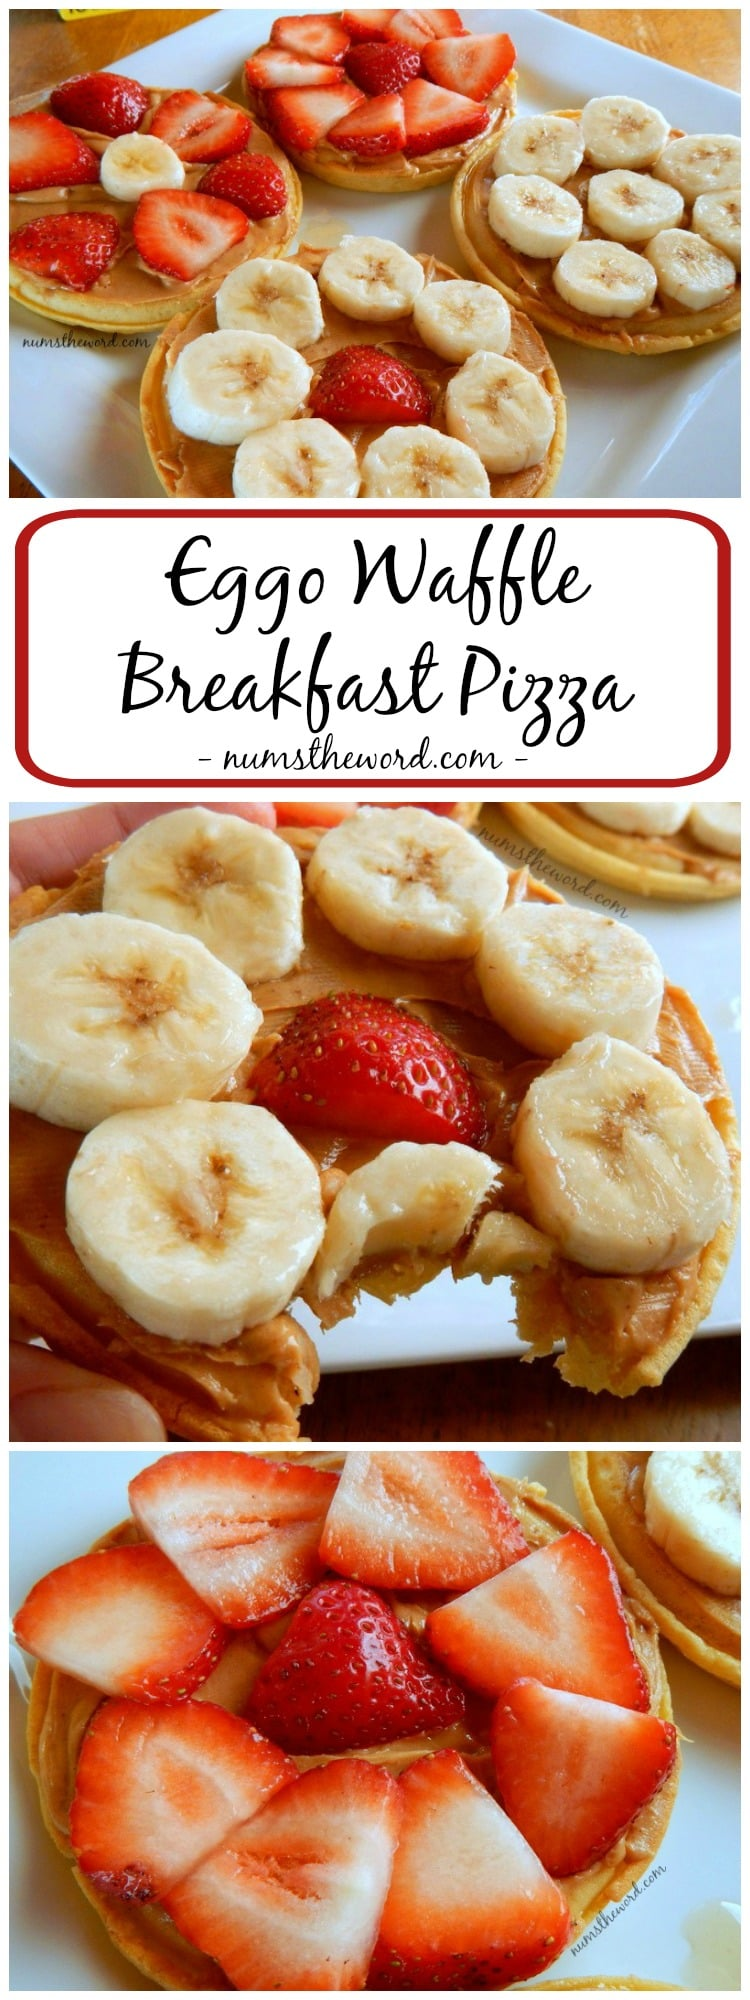 Eggo Waffle Breakfast Pizza - collage of images for pinterest